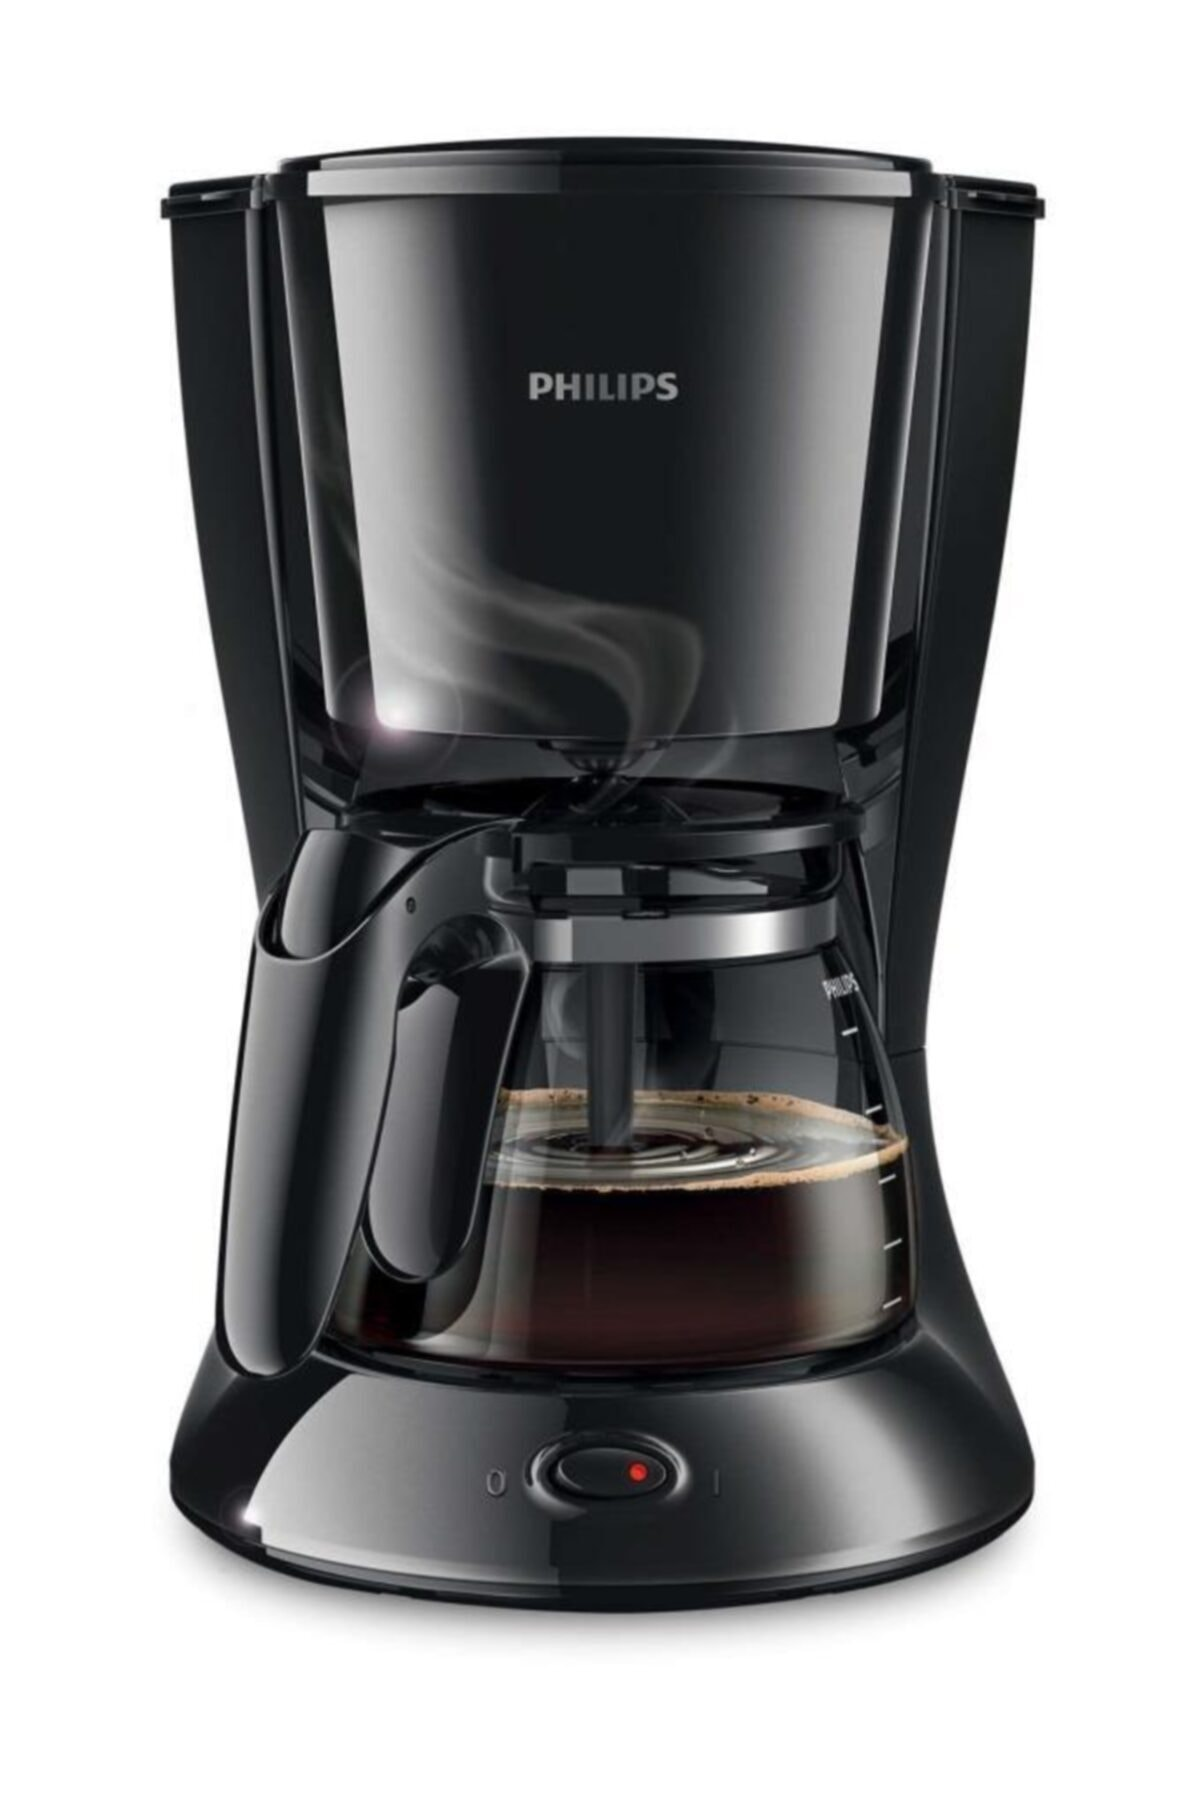 Philips Hd7461/20 Daily Collection Siyah Filtre Kahve Makinesi 2